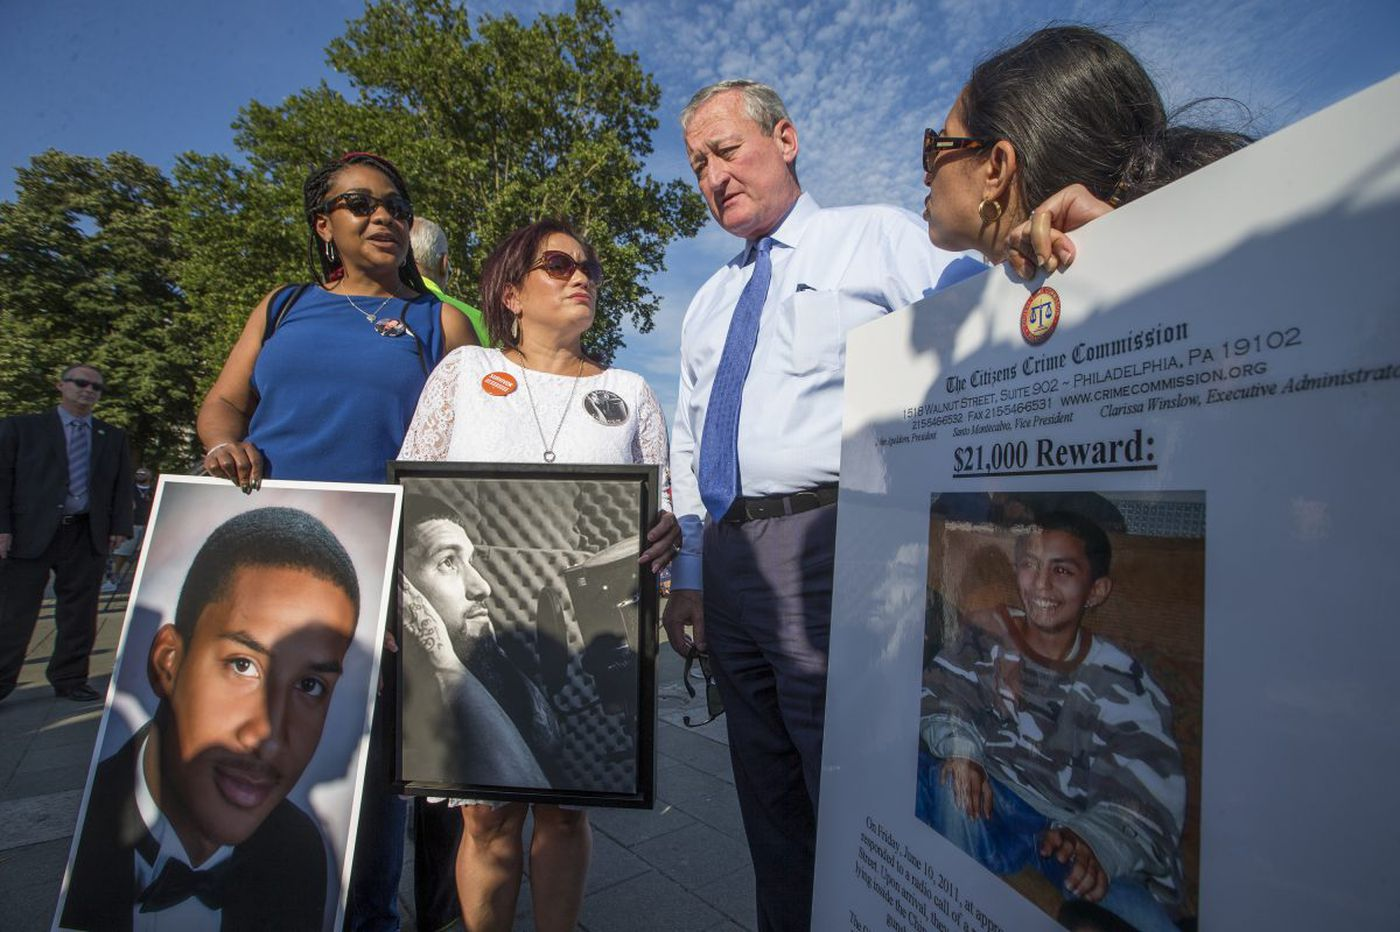 Prove your anti-violence program works - or lose your funding | Helen Ubiñas